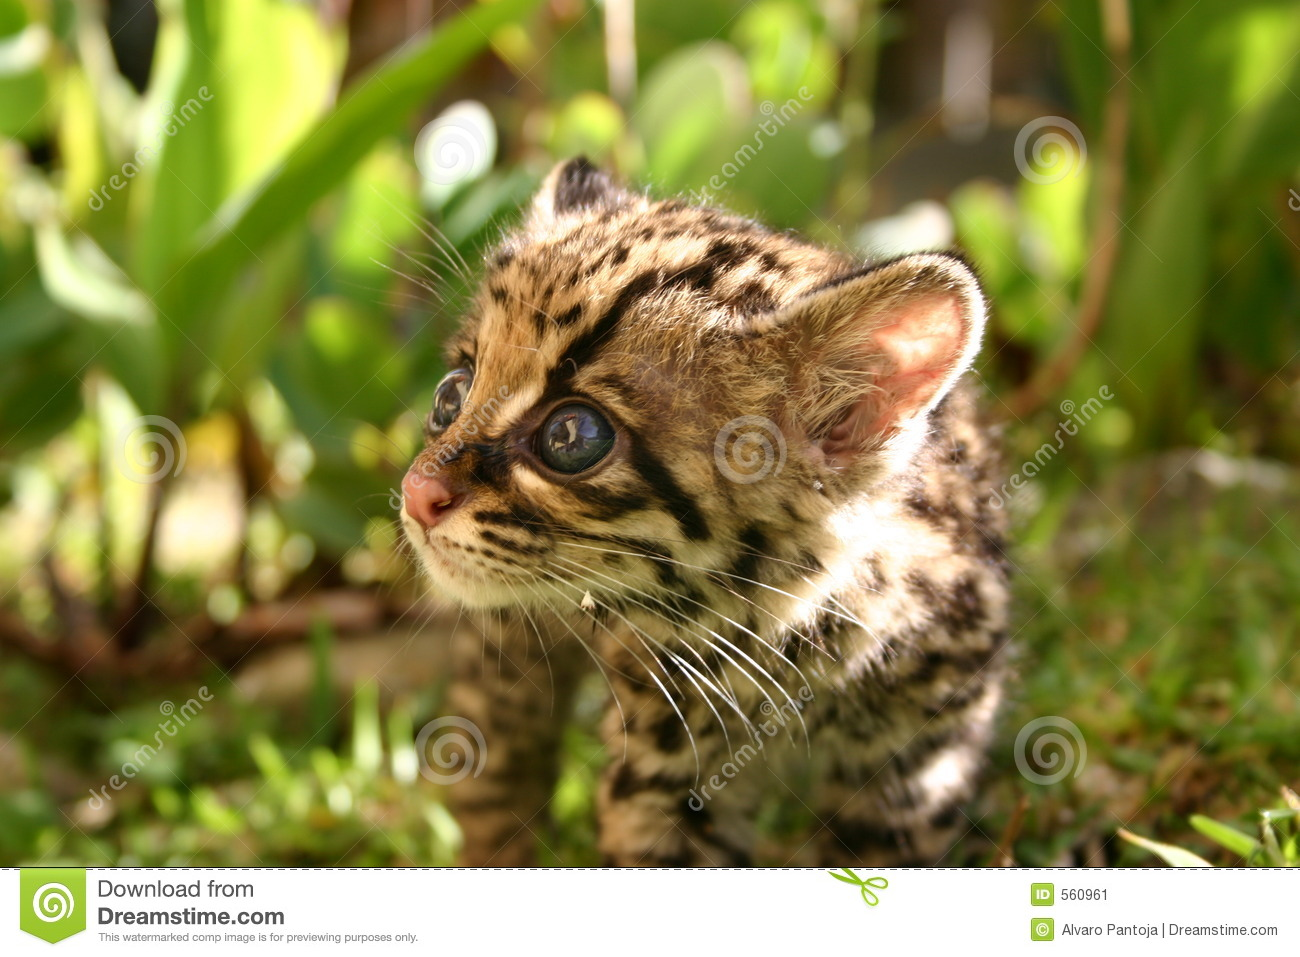 Cute Baby Wallpaper Full Hd Baby Margay Stock Image Image Of Nature Fauna Innocence